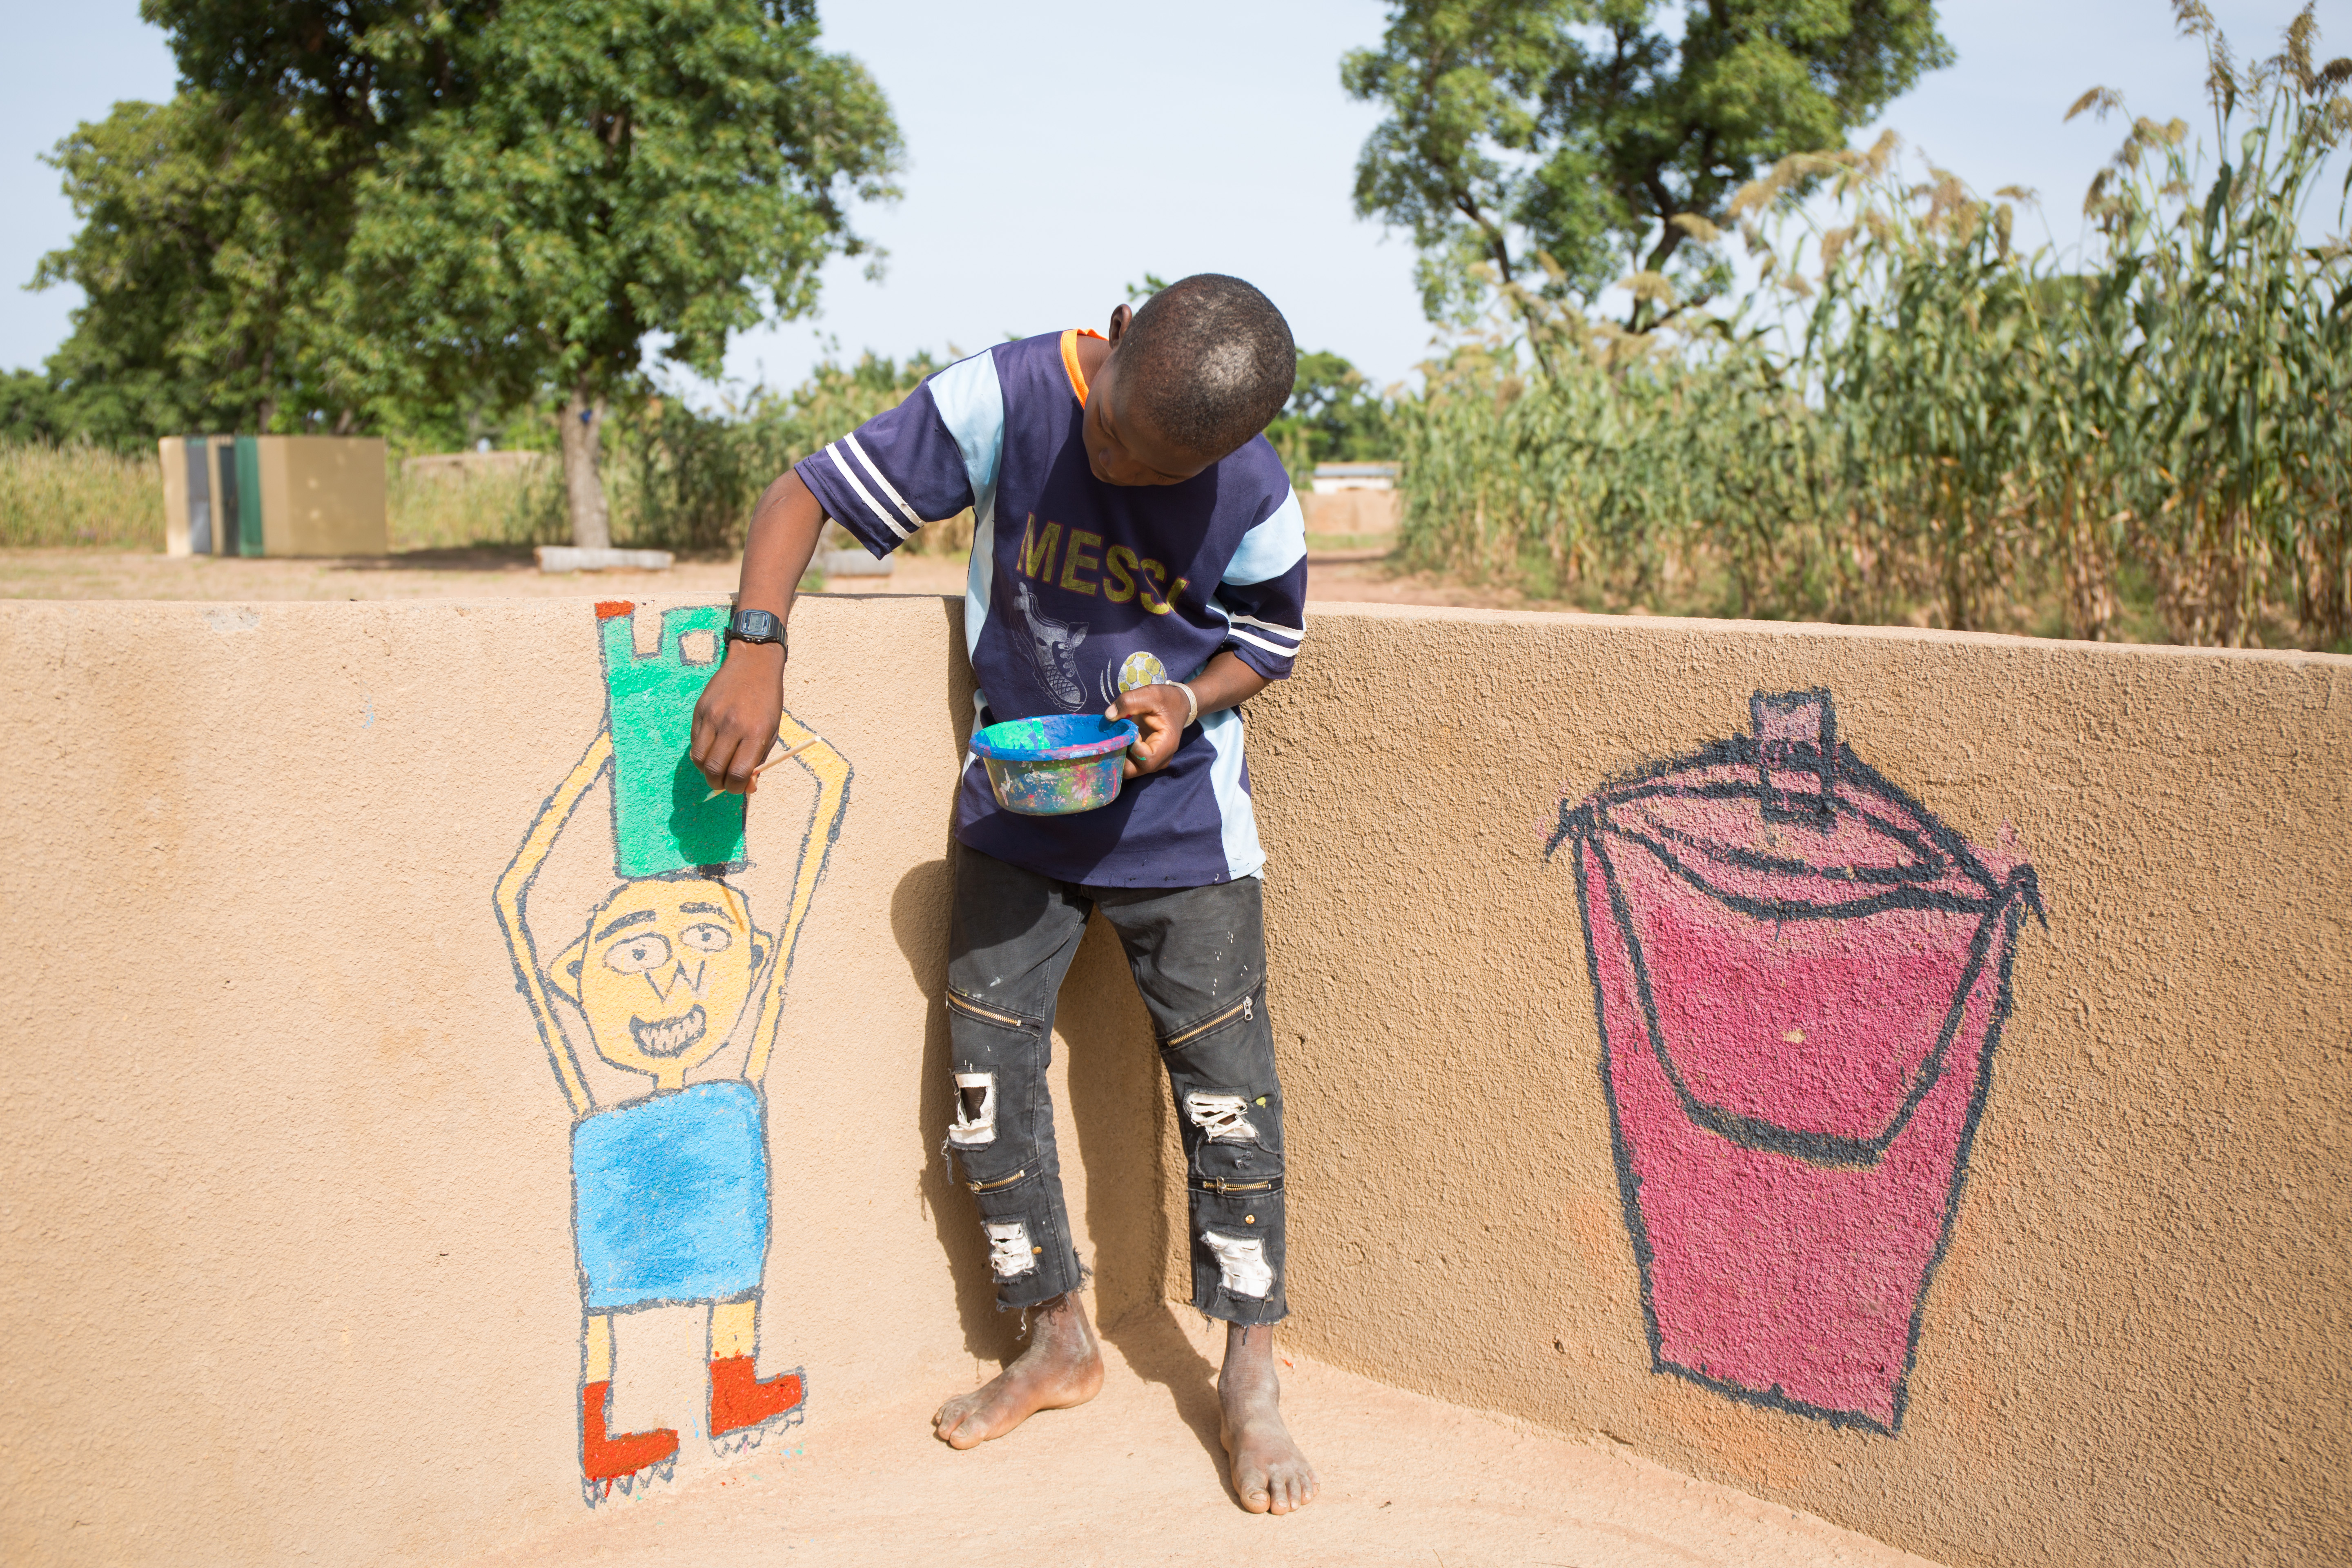 Dramane, an 11-year-old student at Wakoro school in Mali, paints a mural on the new borehole to educate his peers and community members about hygiene behaviours and attitudes to adopt or to avoid.